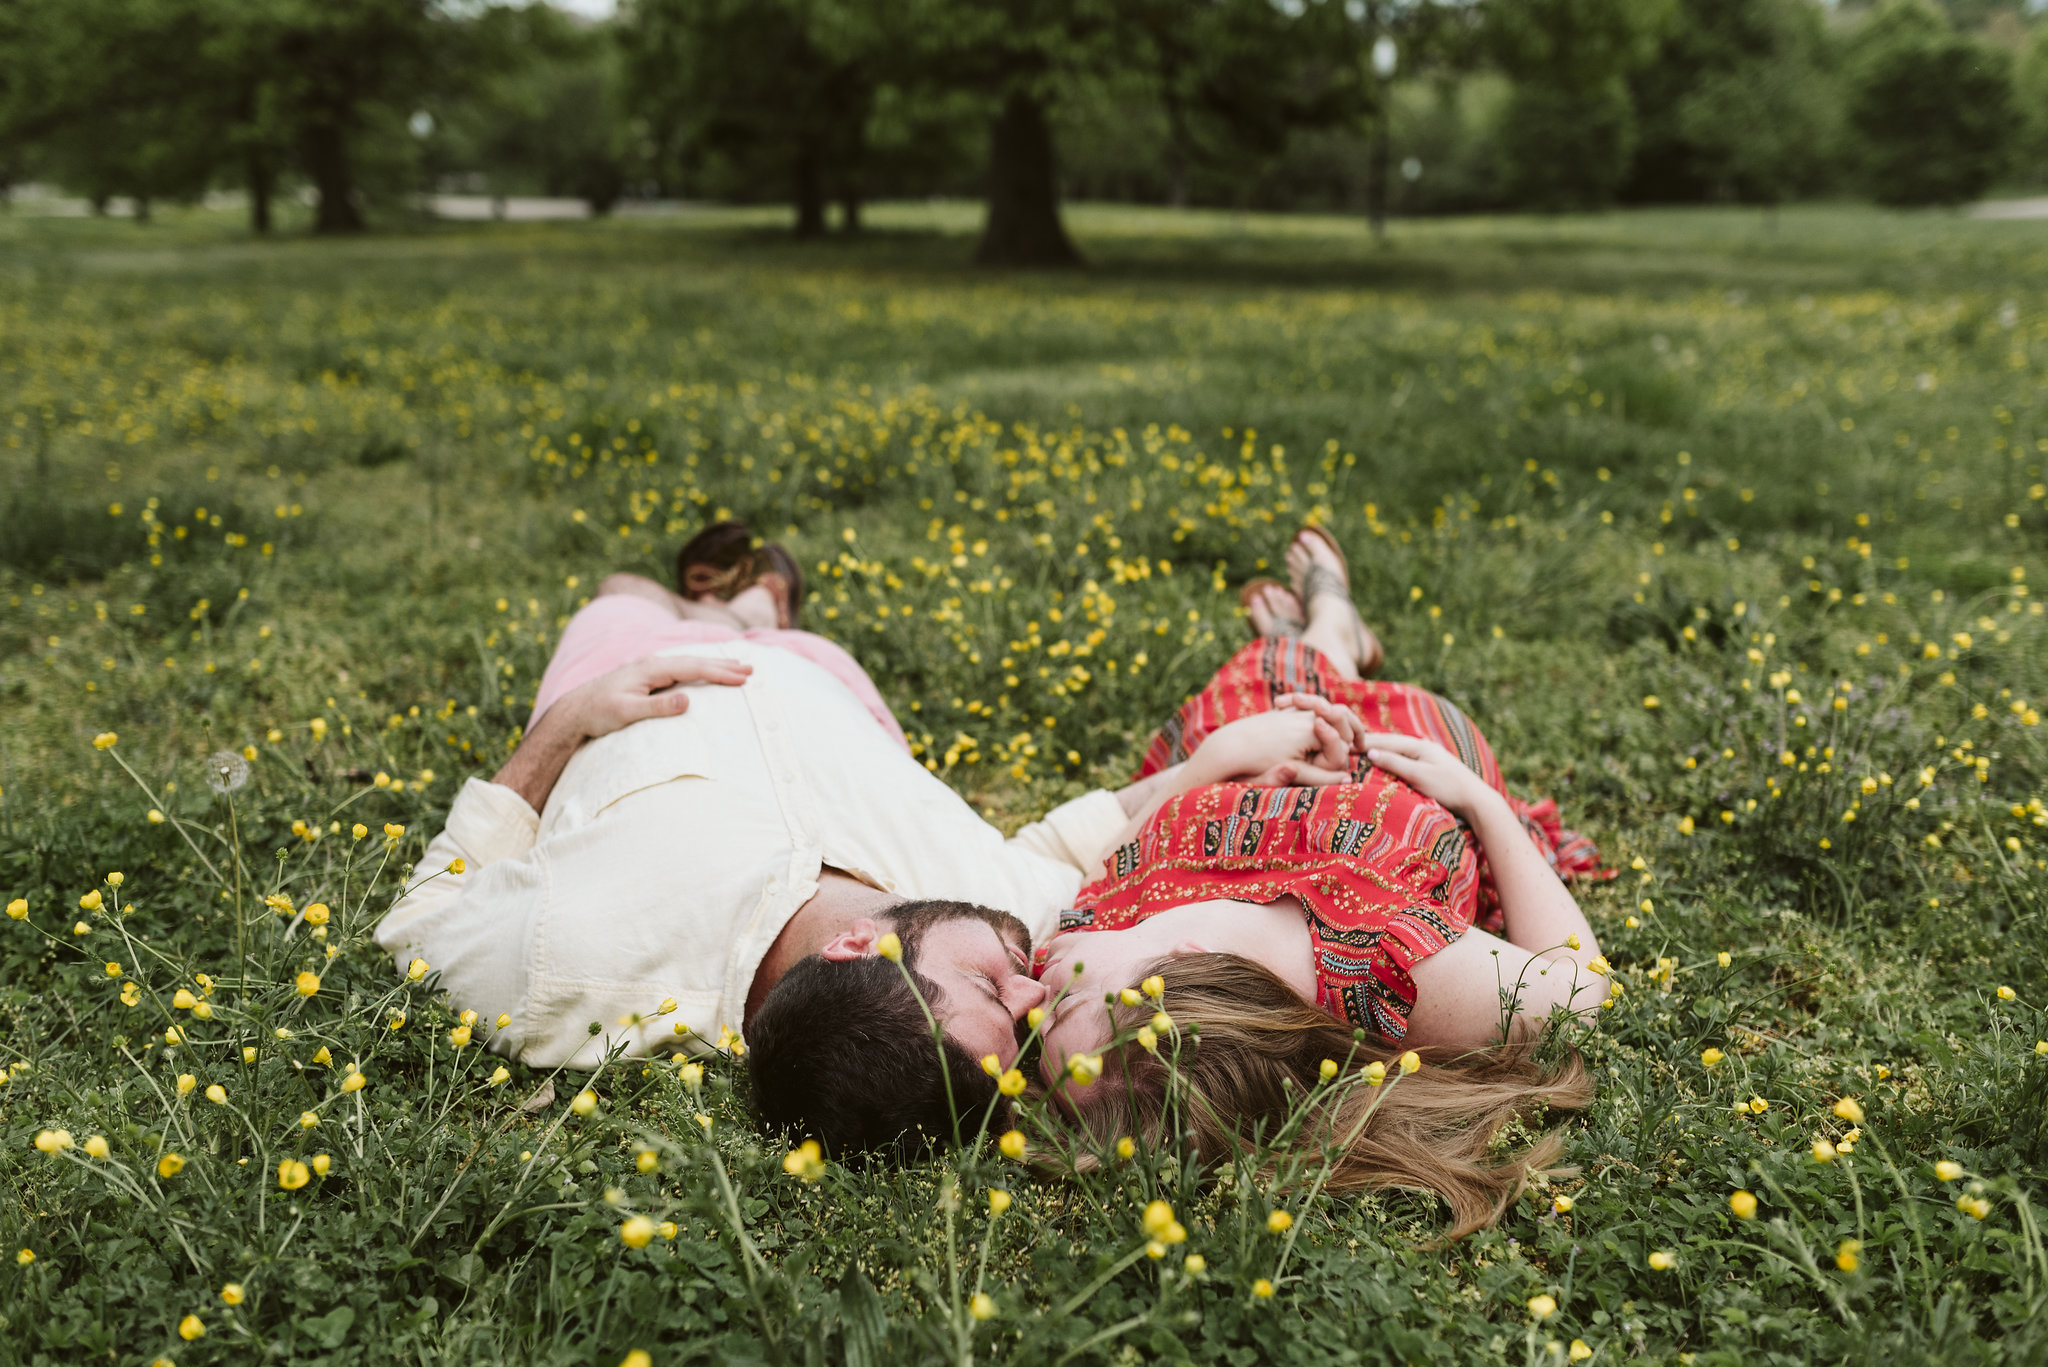 Engagement Photos, Patterson Park, Baltimore, Maryland Wedding Photographer, Casual, Fun, Nature, Bride and Groom Laying in the Grass, Buttercup Flowers